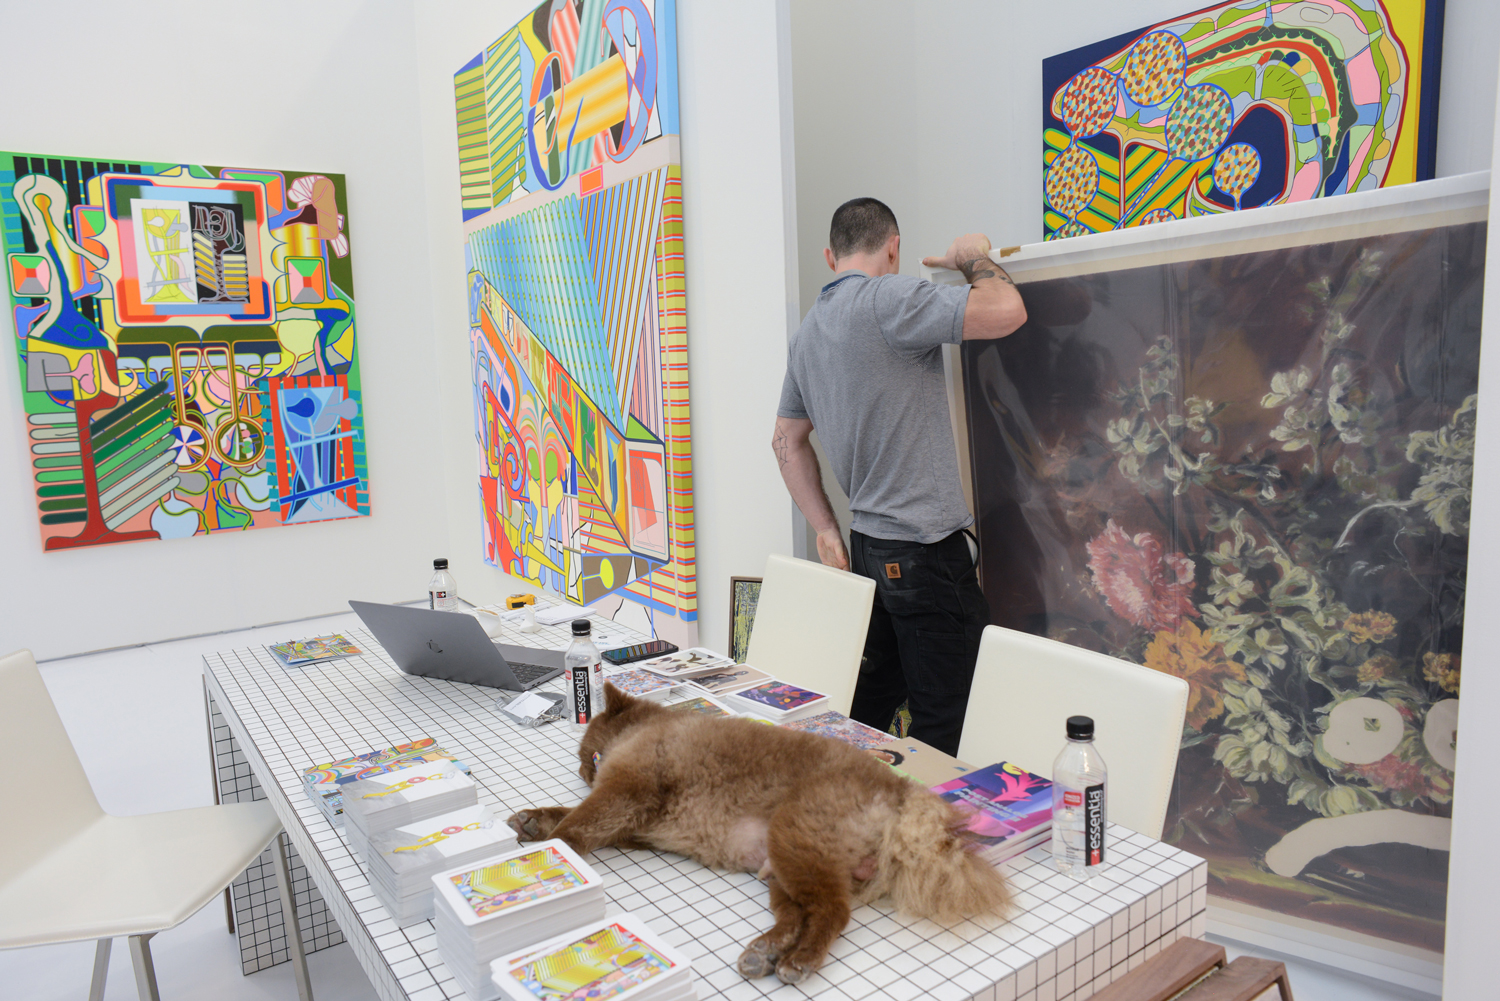 Scenes from Miami Art Week: Day 1